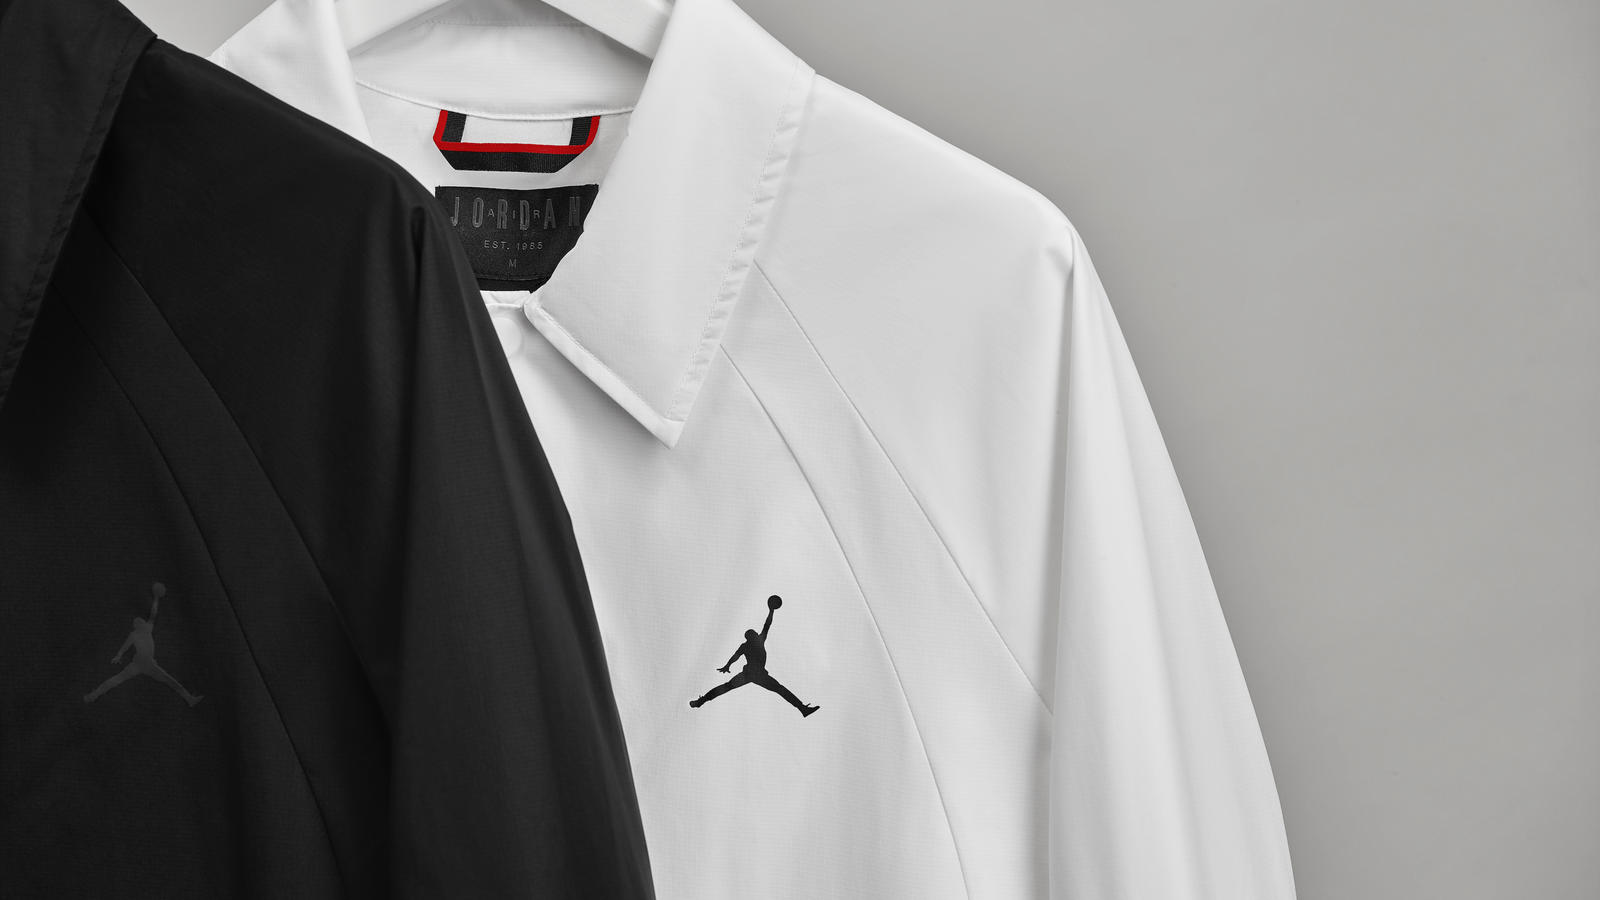 JORDAN BRAND UNVEILS FALL '17 APPAREL COLLECTION 8